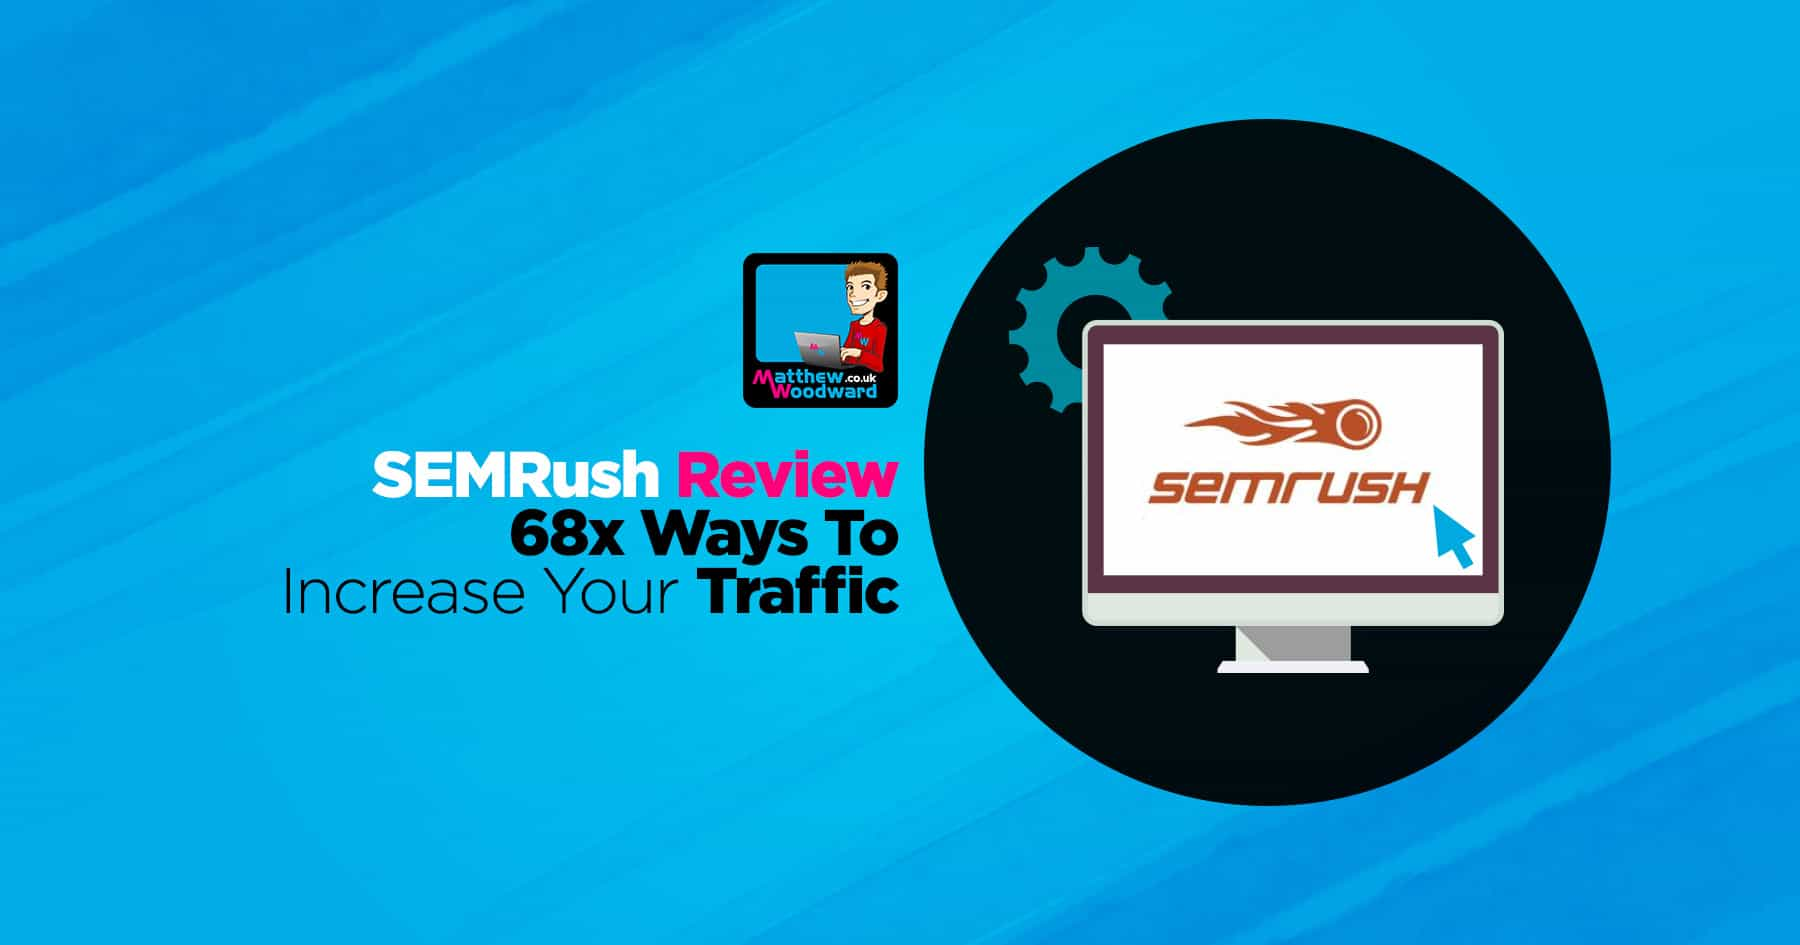 Seo Software Semrush Off Lease Coupon Code